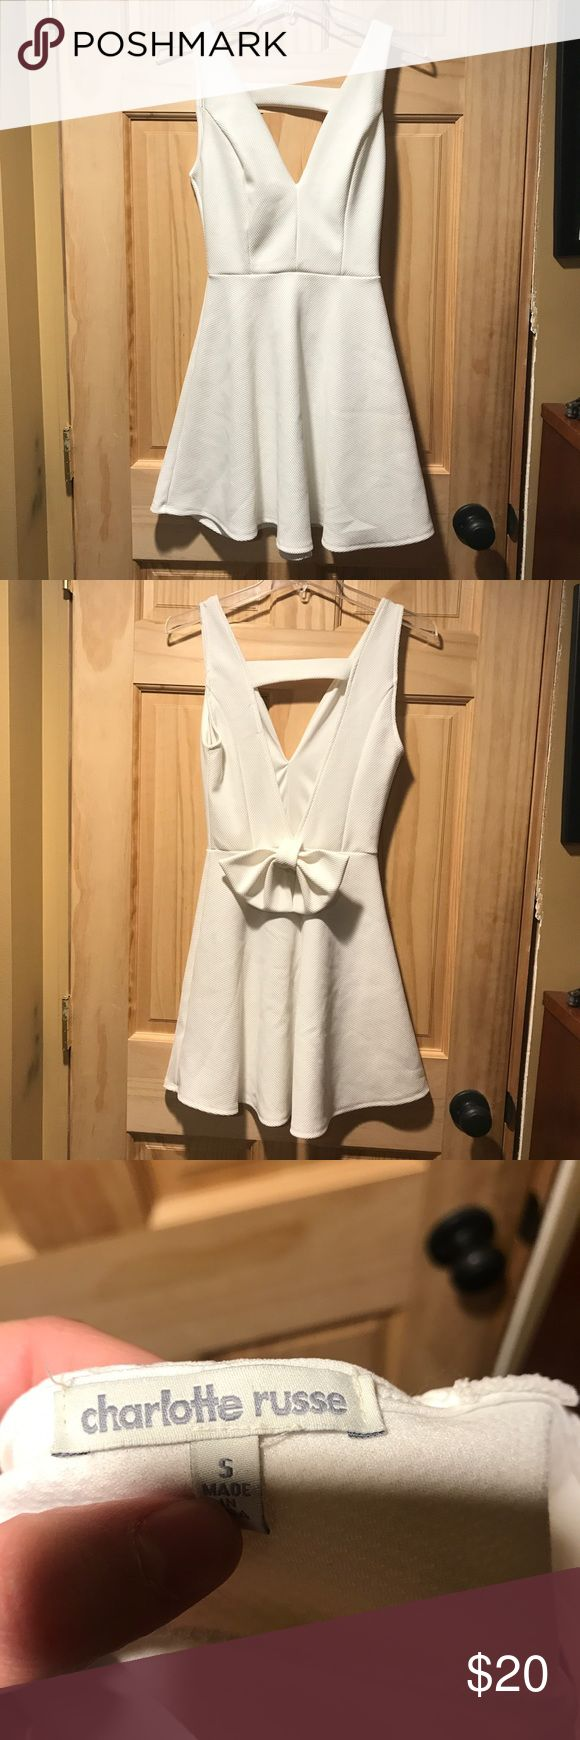 [Charlotte Ruuse] White dress Size small. V cut dress, with a deep v in the back as well. Has a super cute bow on the back and there are no visible flaws! Charlotte Russe Dresses